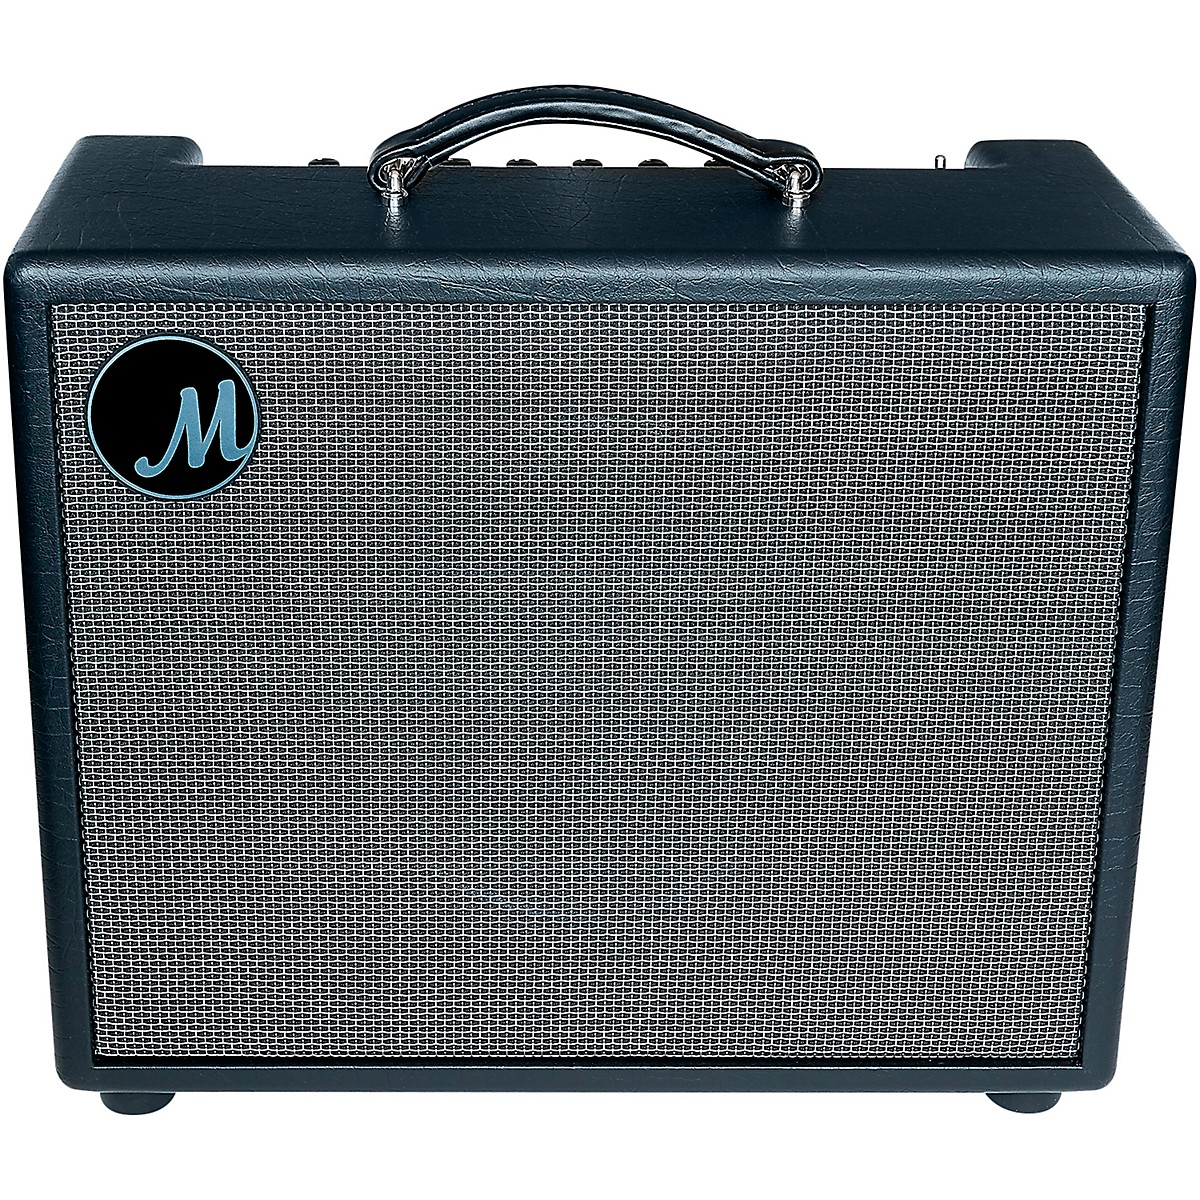 Milkman Sound The Amp 50W 1x12 Guitar Combo Amplifier